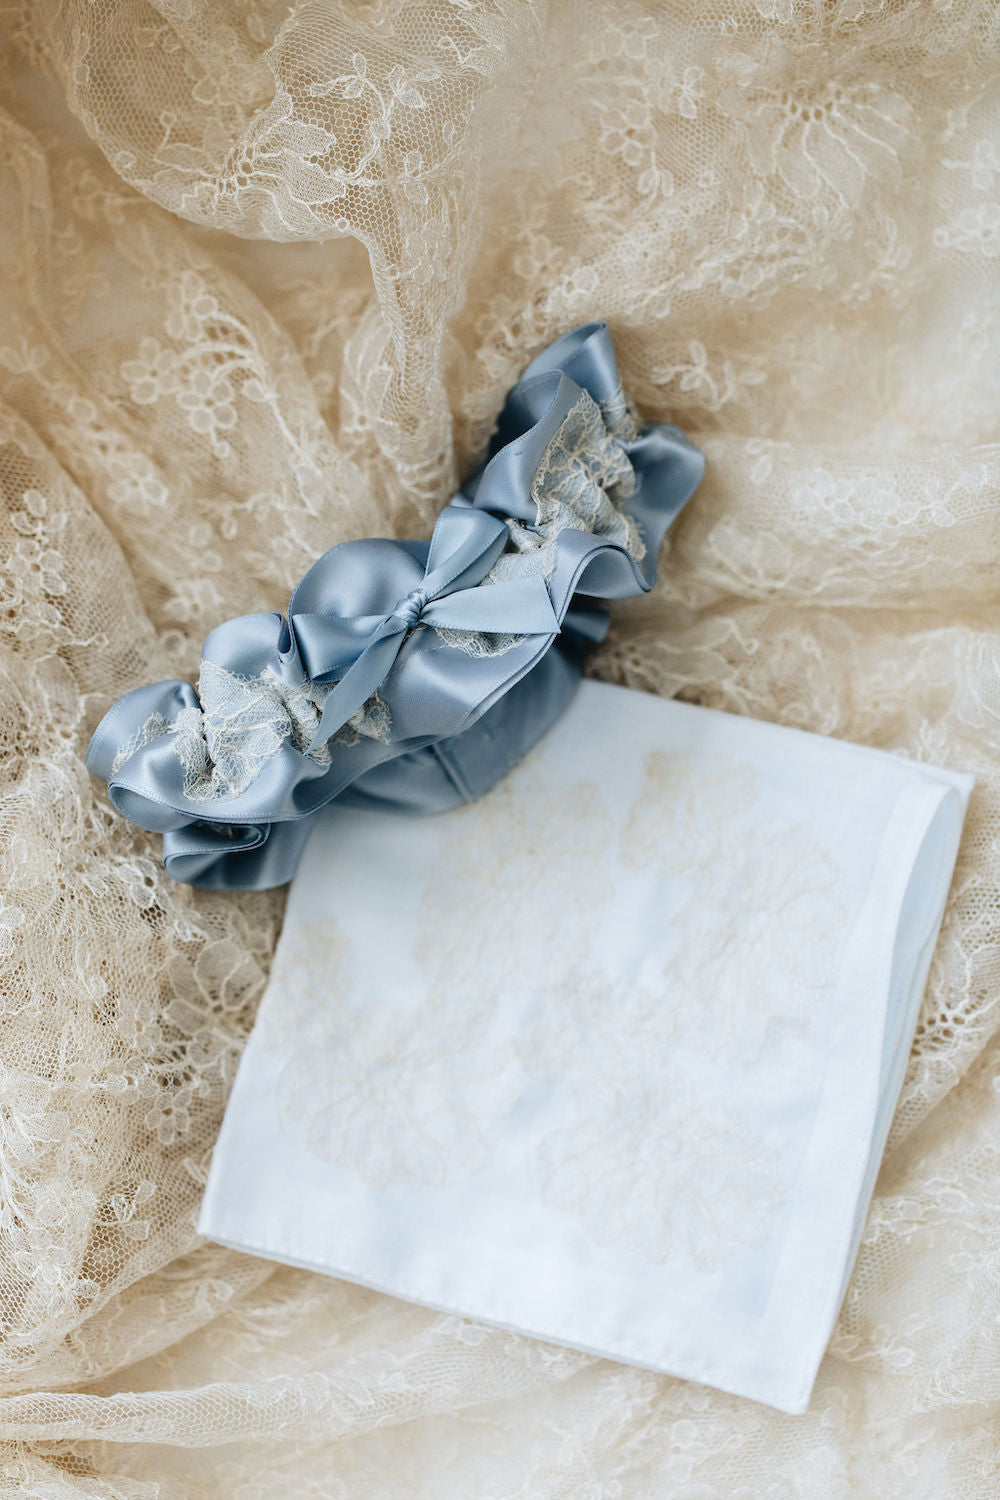 wedding garter & handkerchief handmade from bride's grandmother's lace veil - wedding heirloom by The Garter Girl